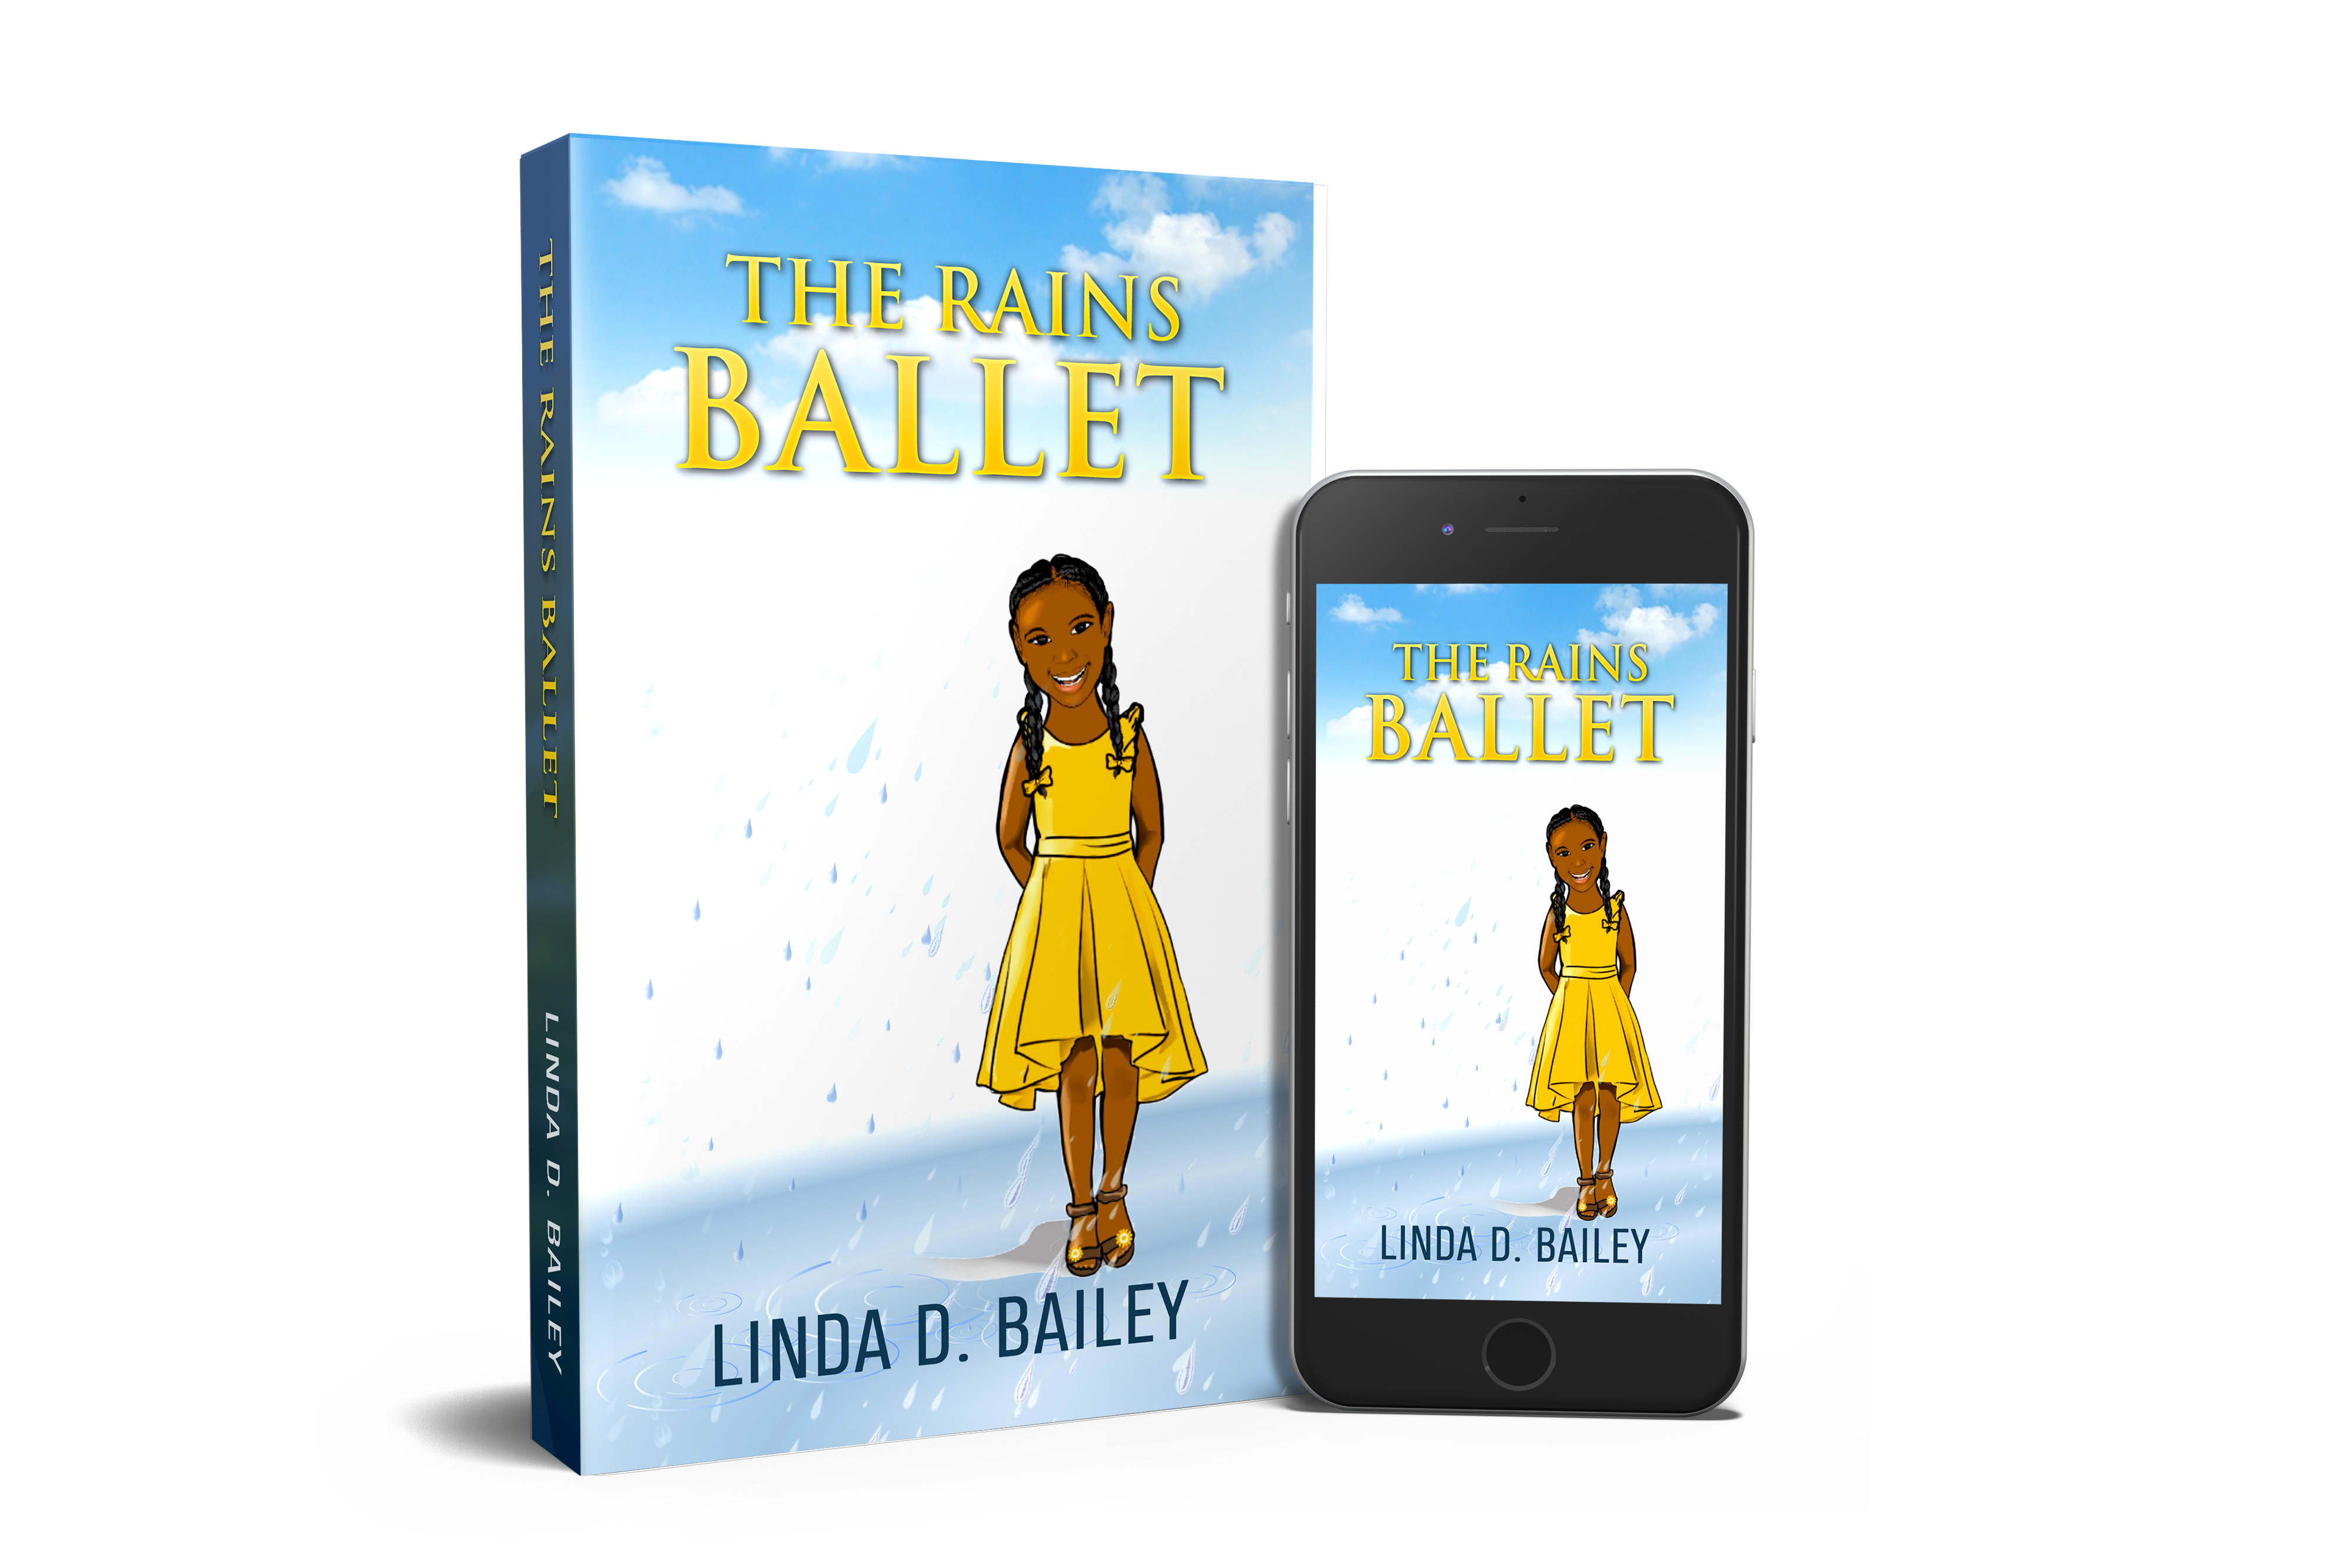 The Rains Ballet by Linda D. Bailey